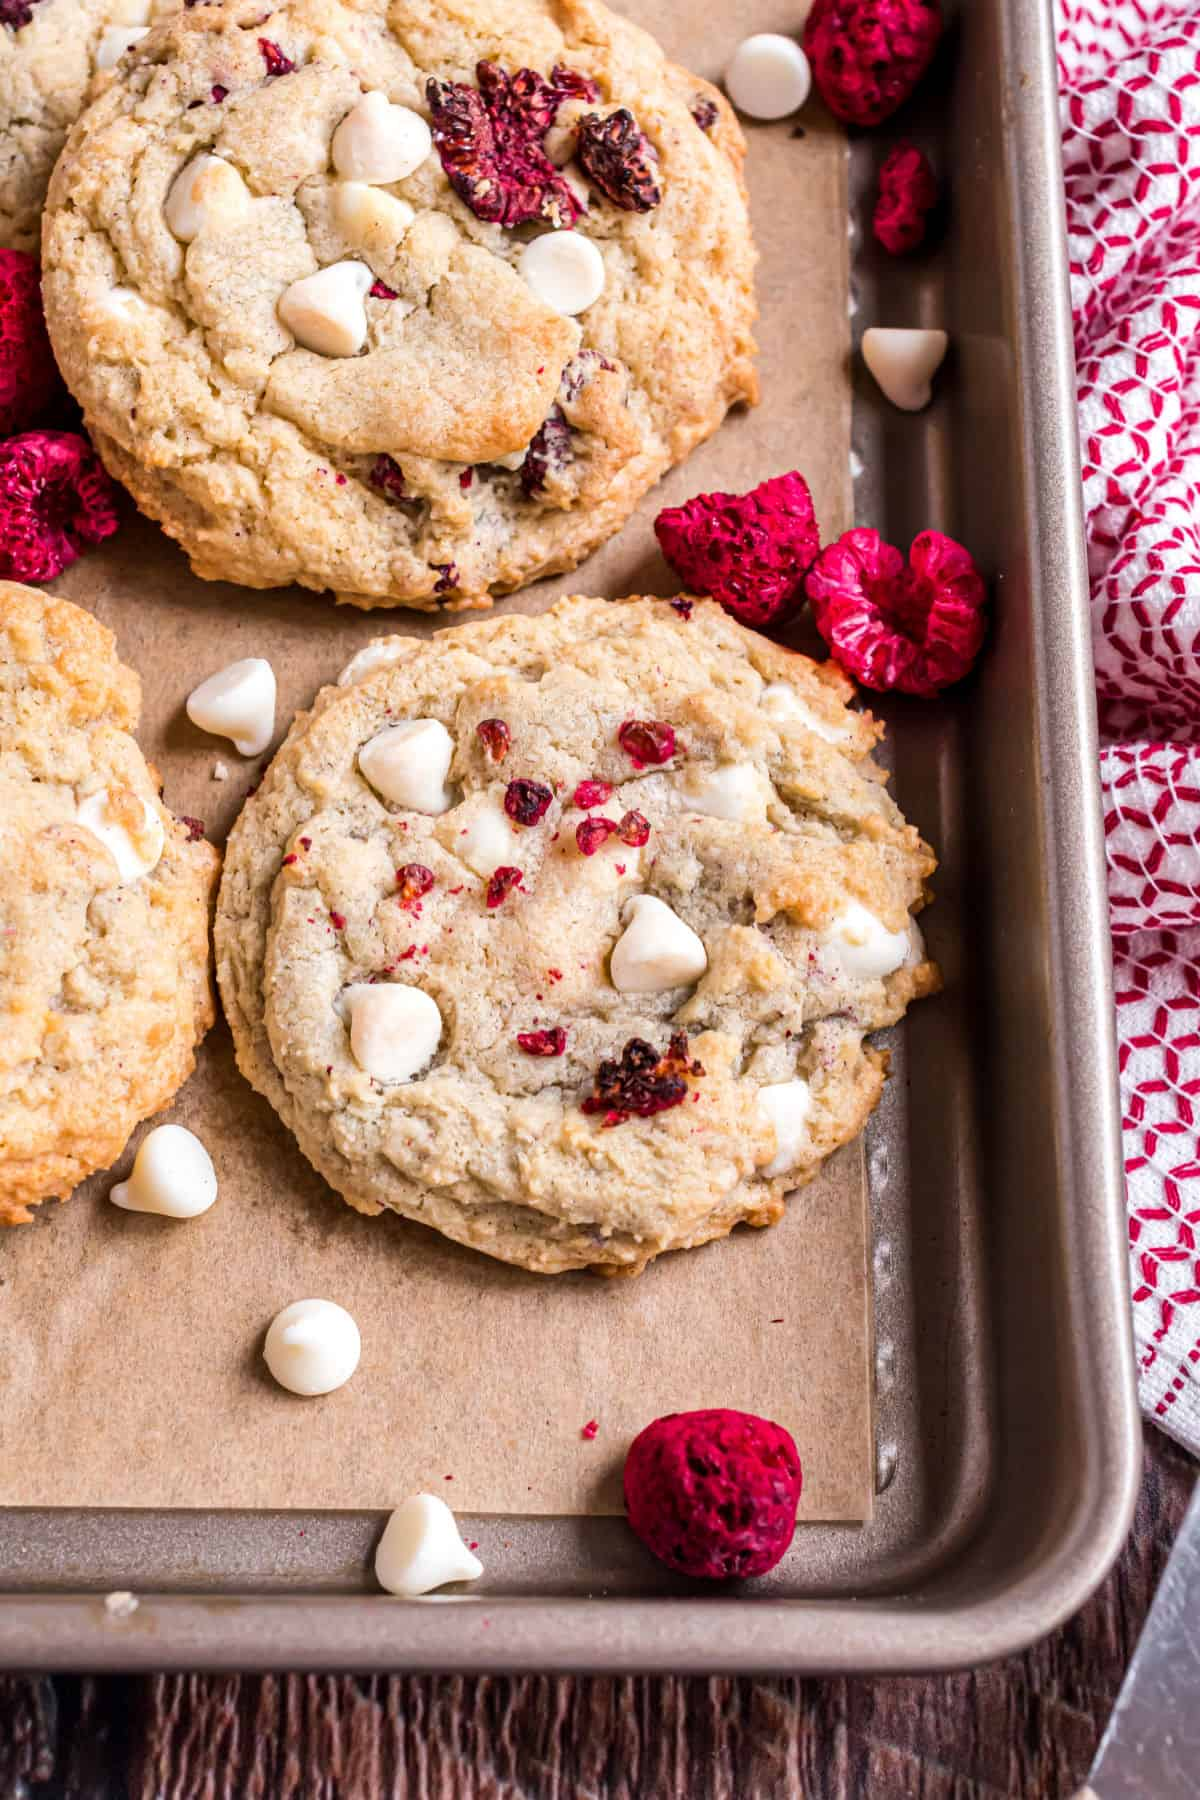 Raspberry cheesecake cookie on parchment paper with white chocolate chips.